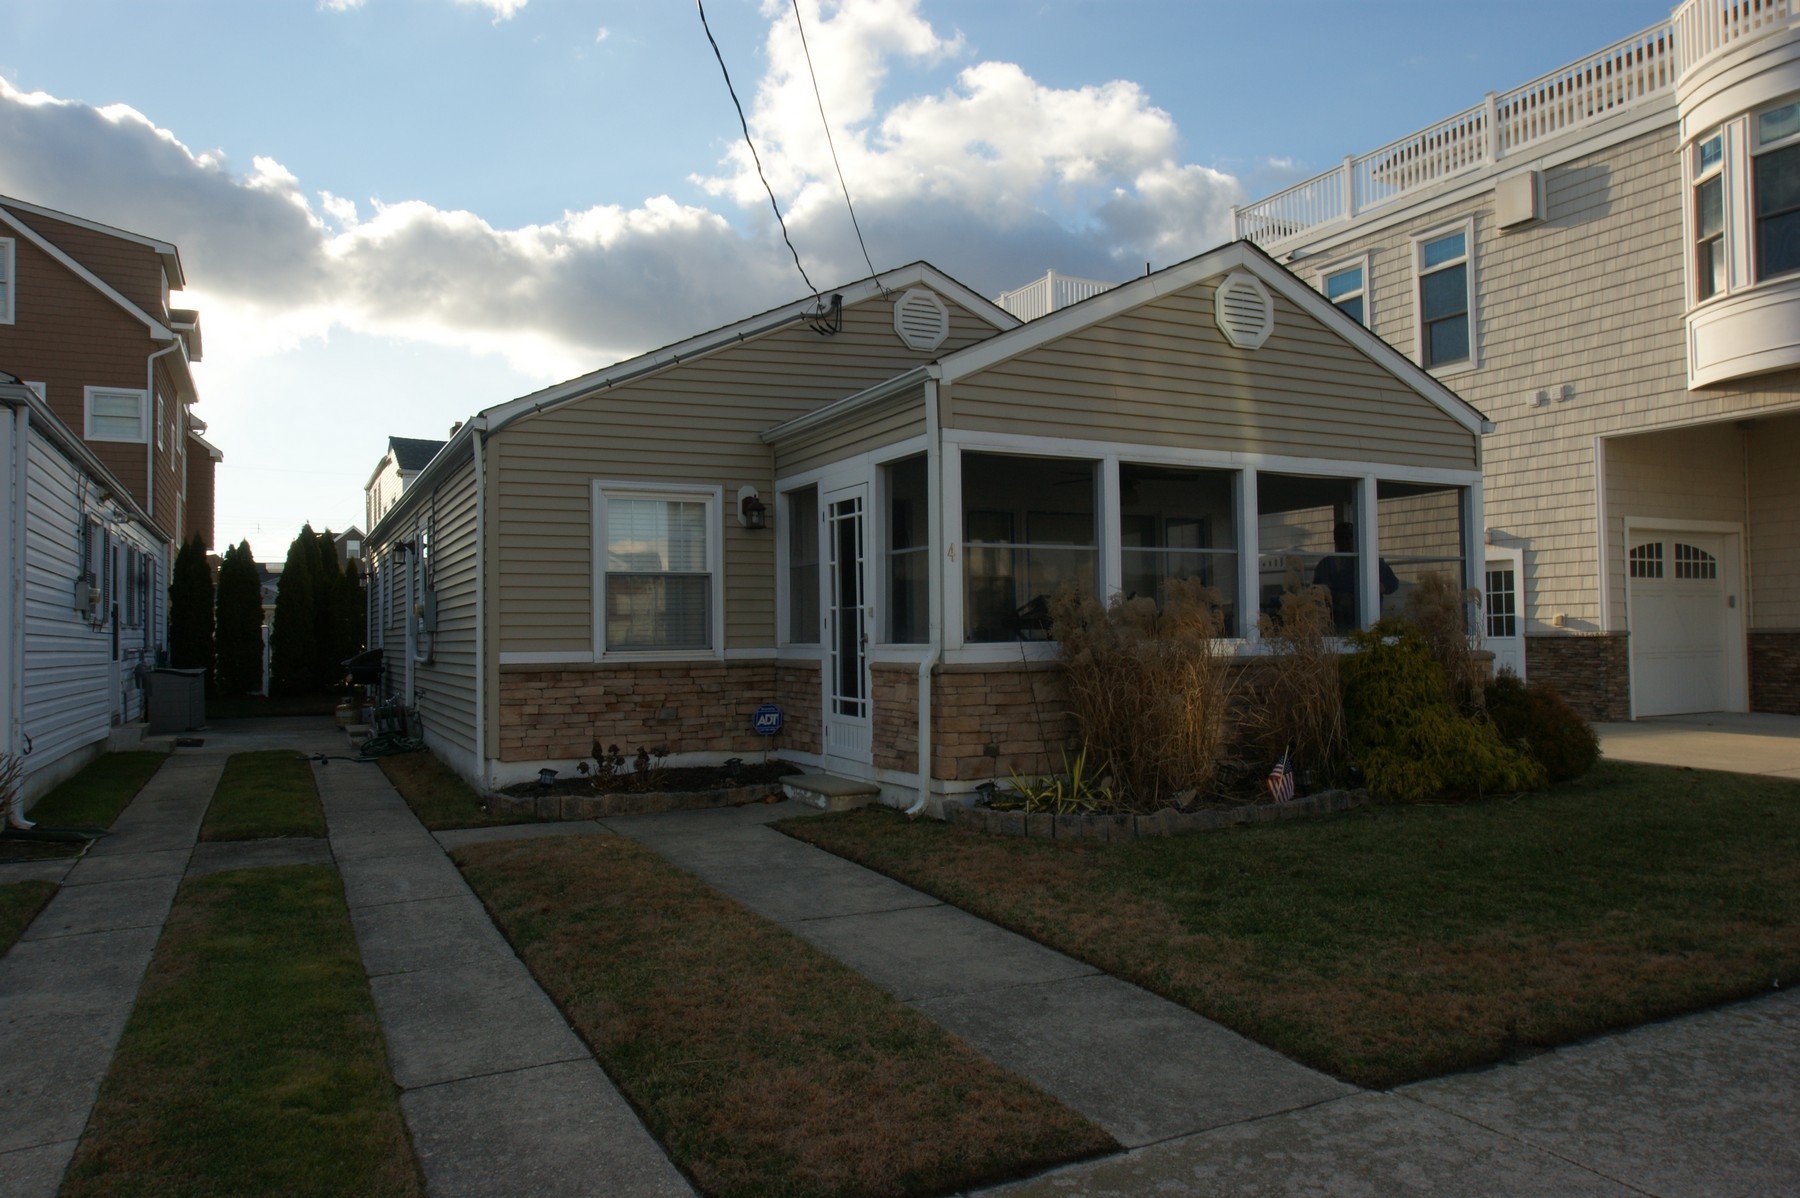 Single Family Home for Sale at 4 S 35th Ave Longport, New Jersey 08403 United States